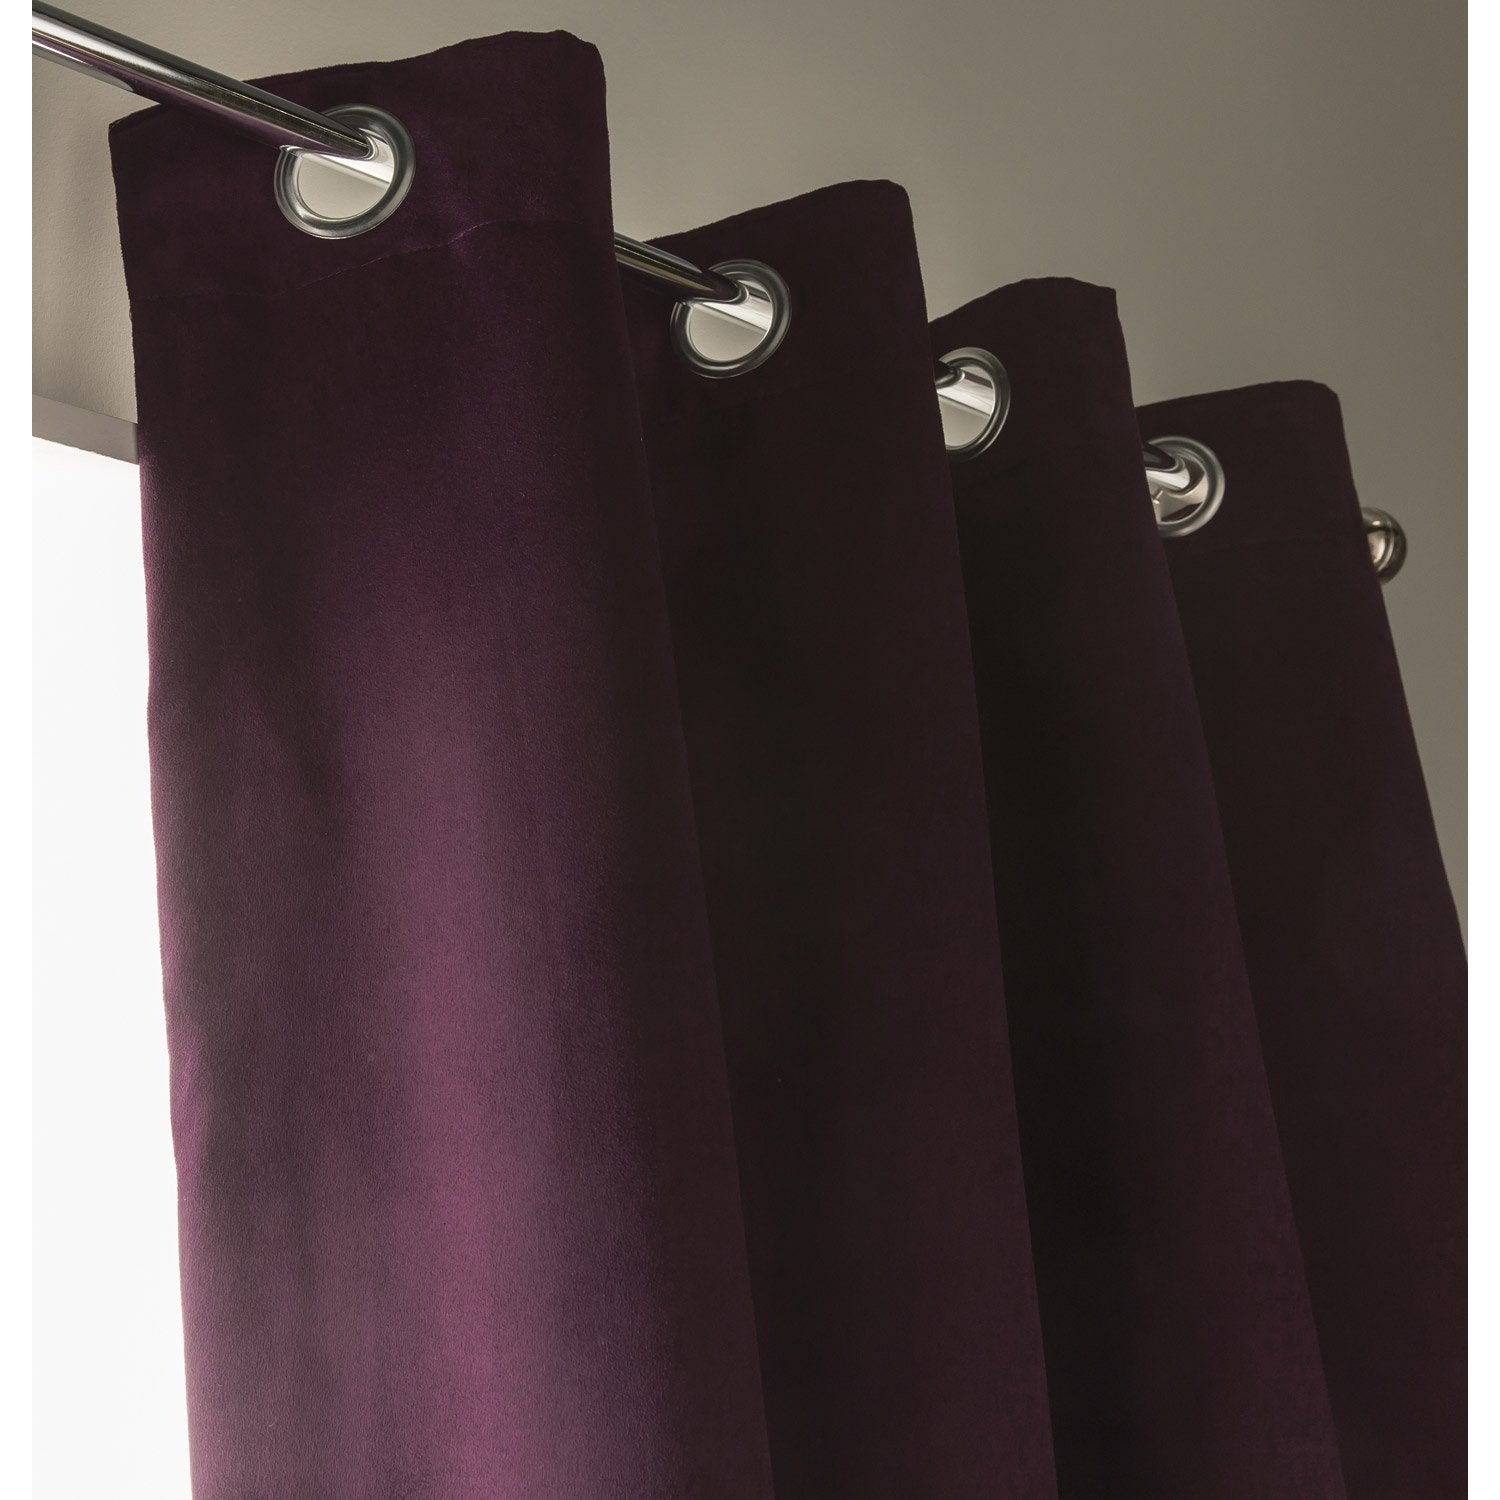 rideau de couleur aubergine photo. Black Bedroom Furniture Sets. Home Design Ideas